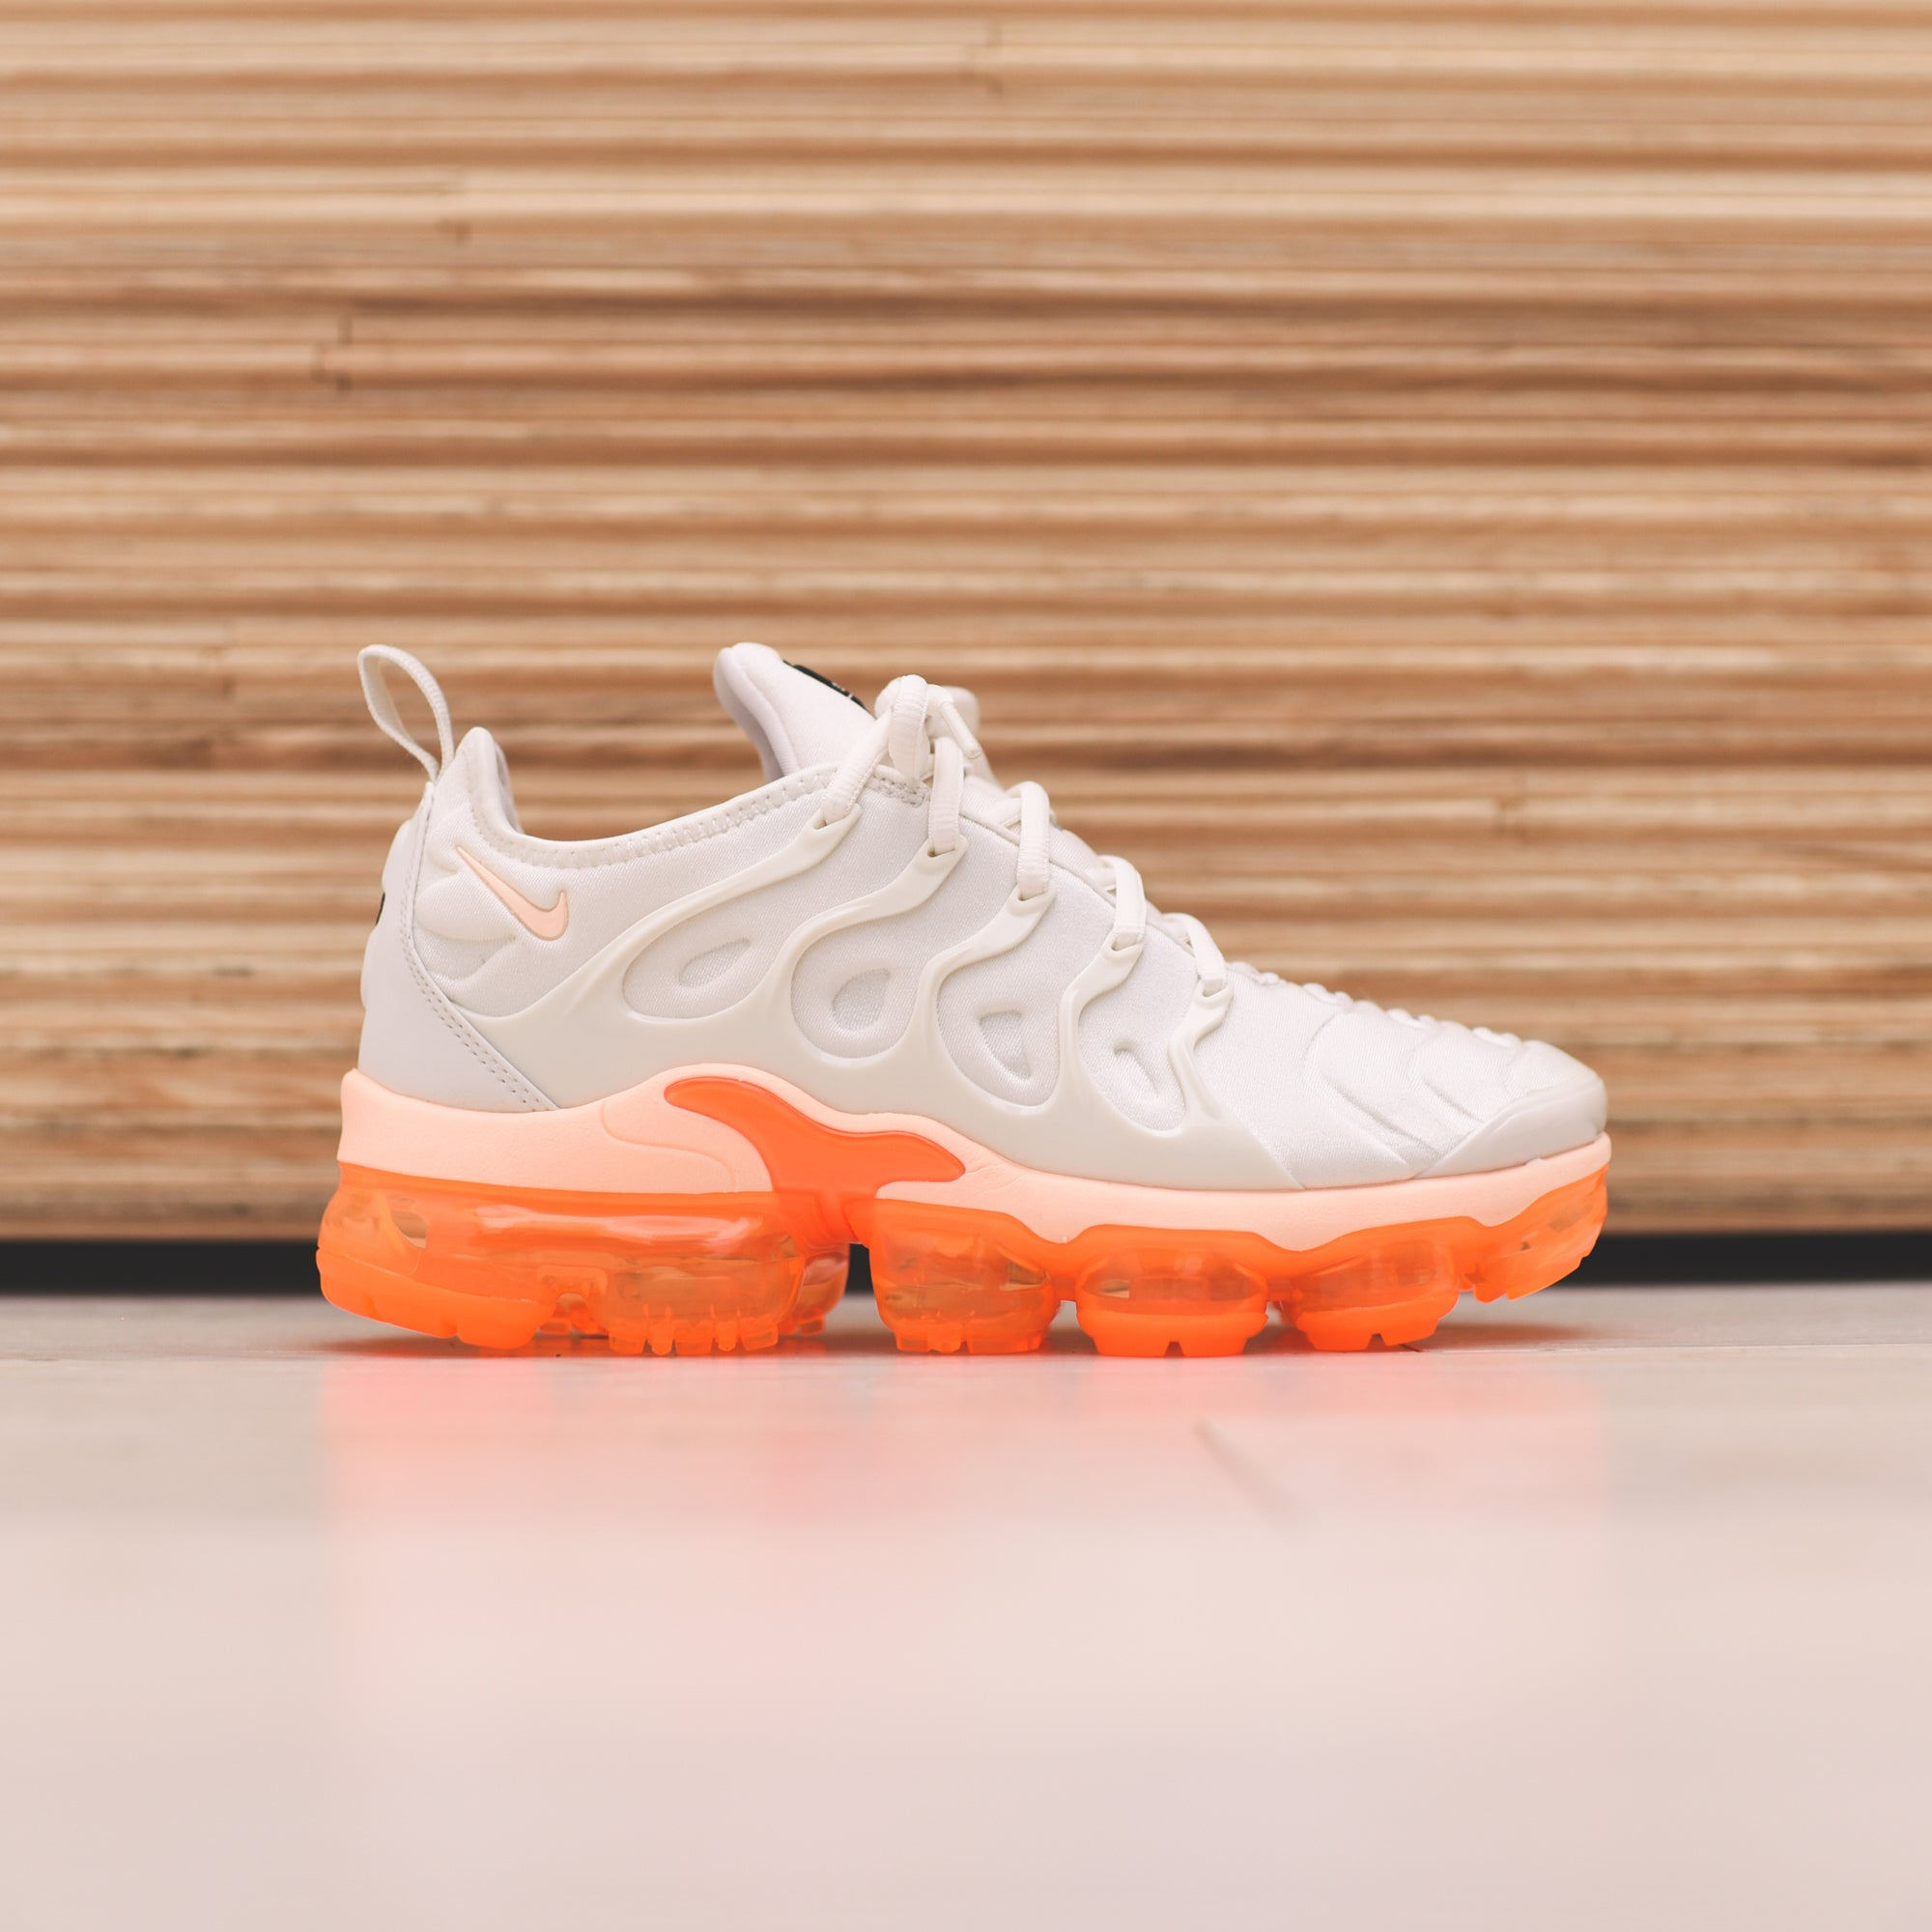 Nike WMNS Air Vapormax Plus - Phantom   Crimson   Tint Total. August 09 676e8694a